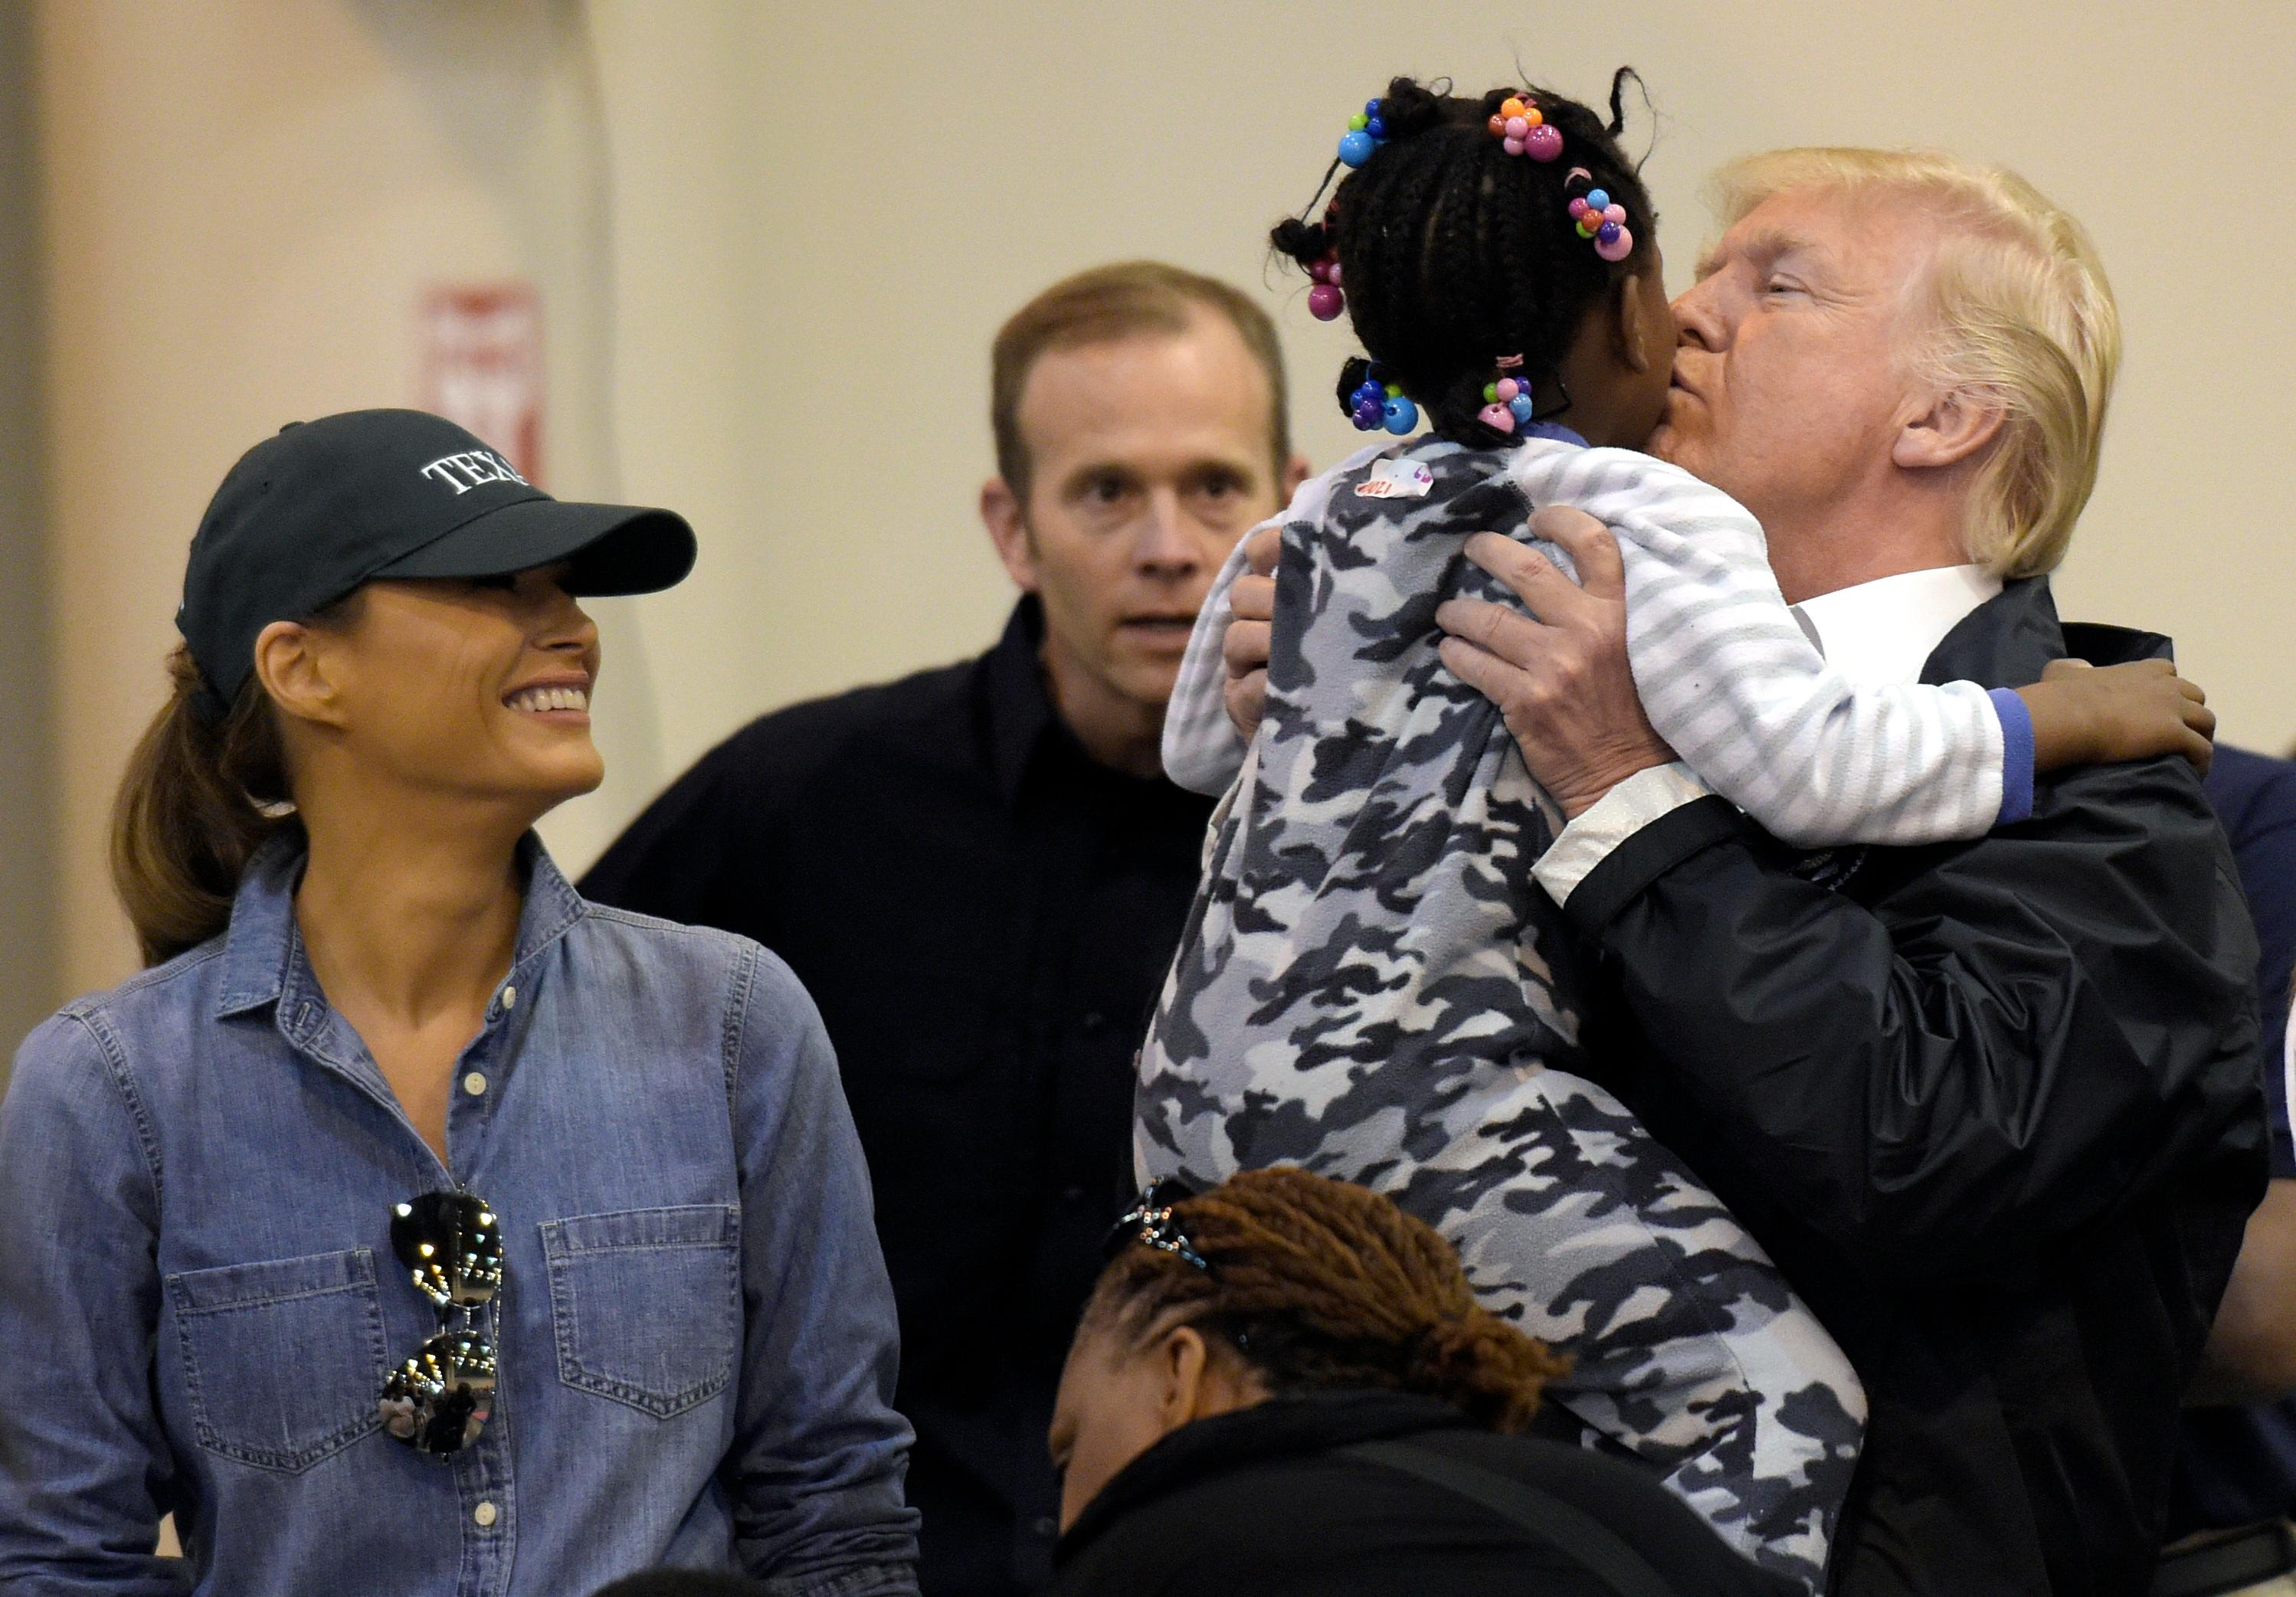 President Donald Trump and Melania Trump meet people impacted by Hurricane Harvey during a visit to the NRG Center in Houston, Saturday, Sept. 2, 2017.  He lifted this girl into his arms to give her a kiss.  It was his second trip to Texas in a week, and this time his first order of business was to meet with those affected by the record-setting rainfall and flooding. He's also set to survey some of the damage and head to Lake Charles, Louisiana, another hard-hit area. (AP Photo/Susan Walsh)